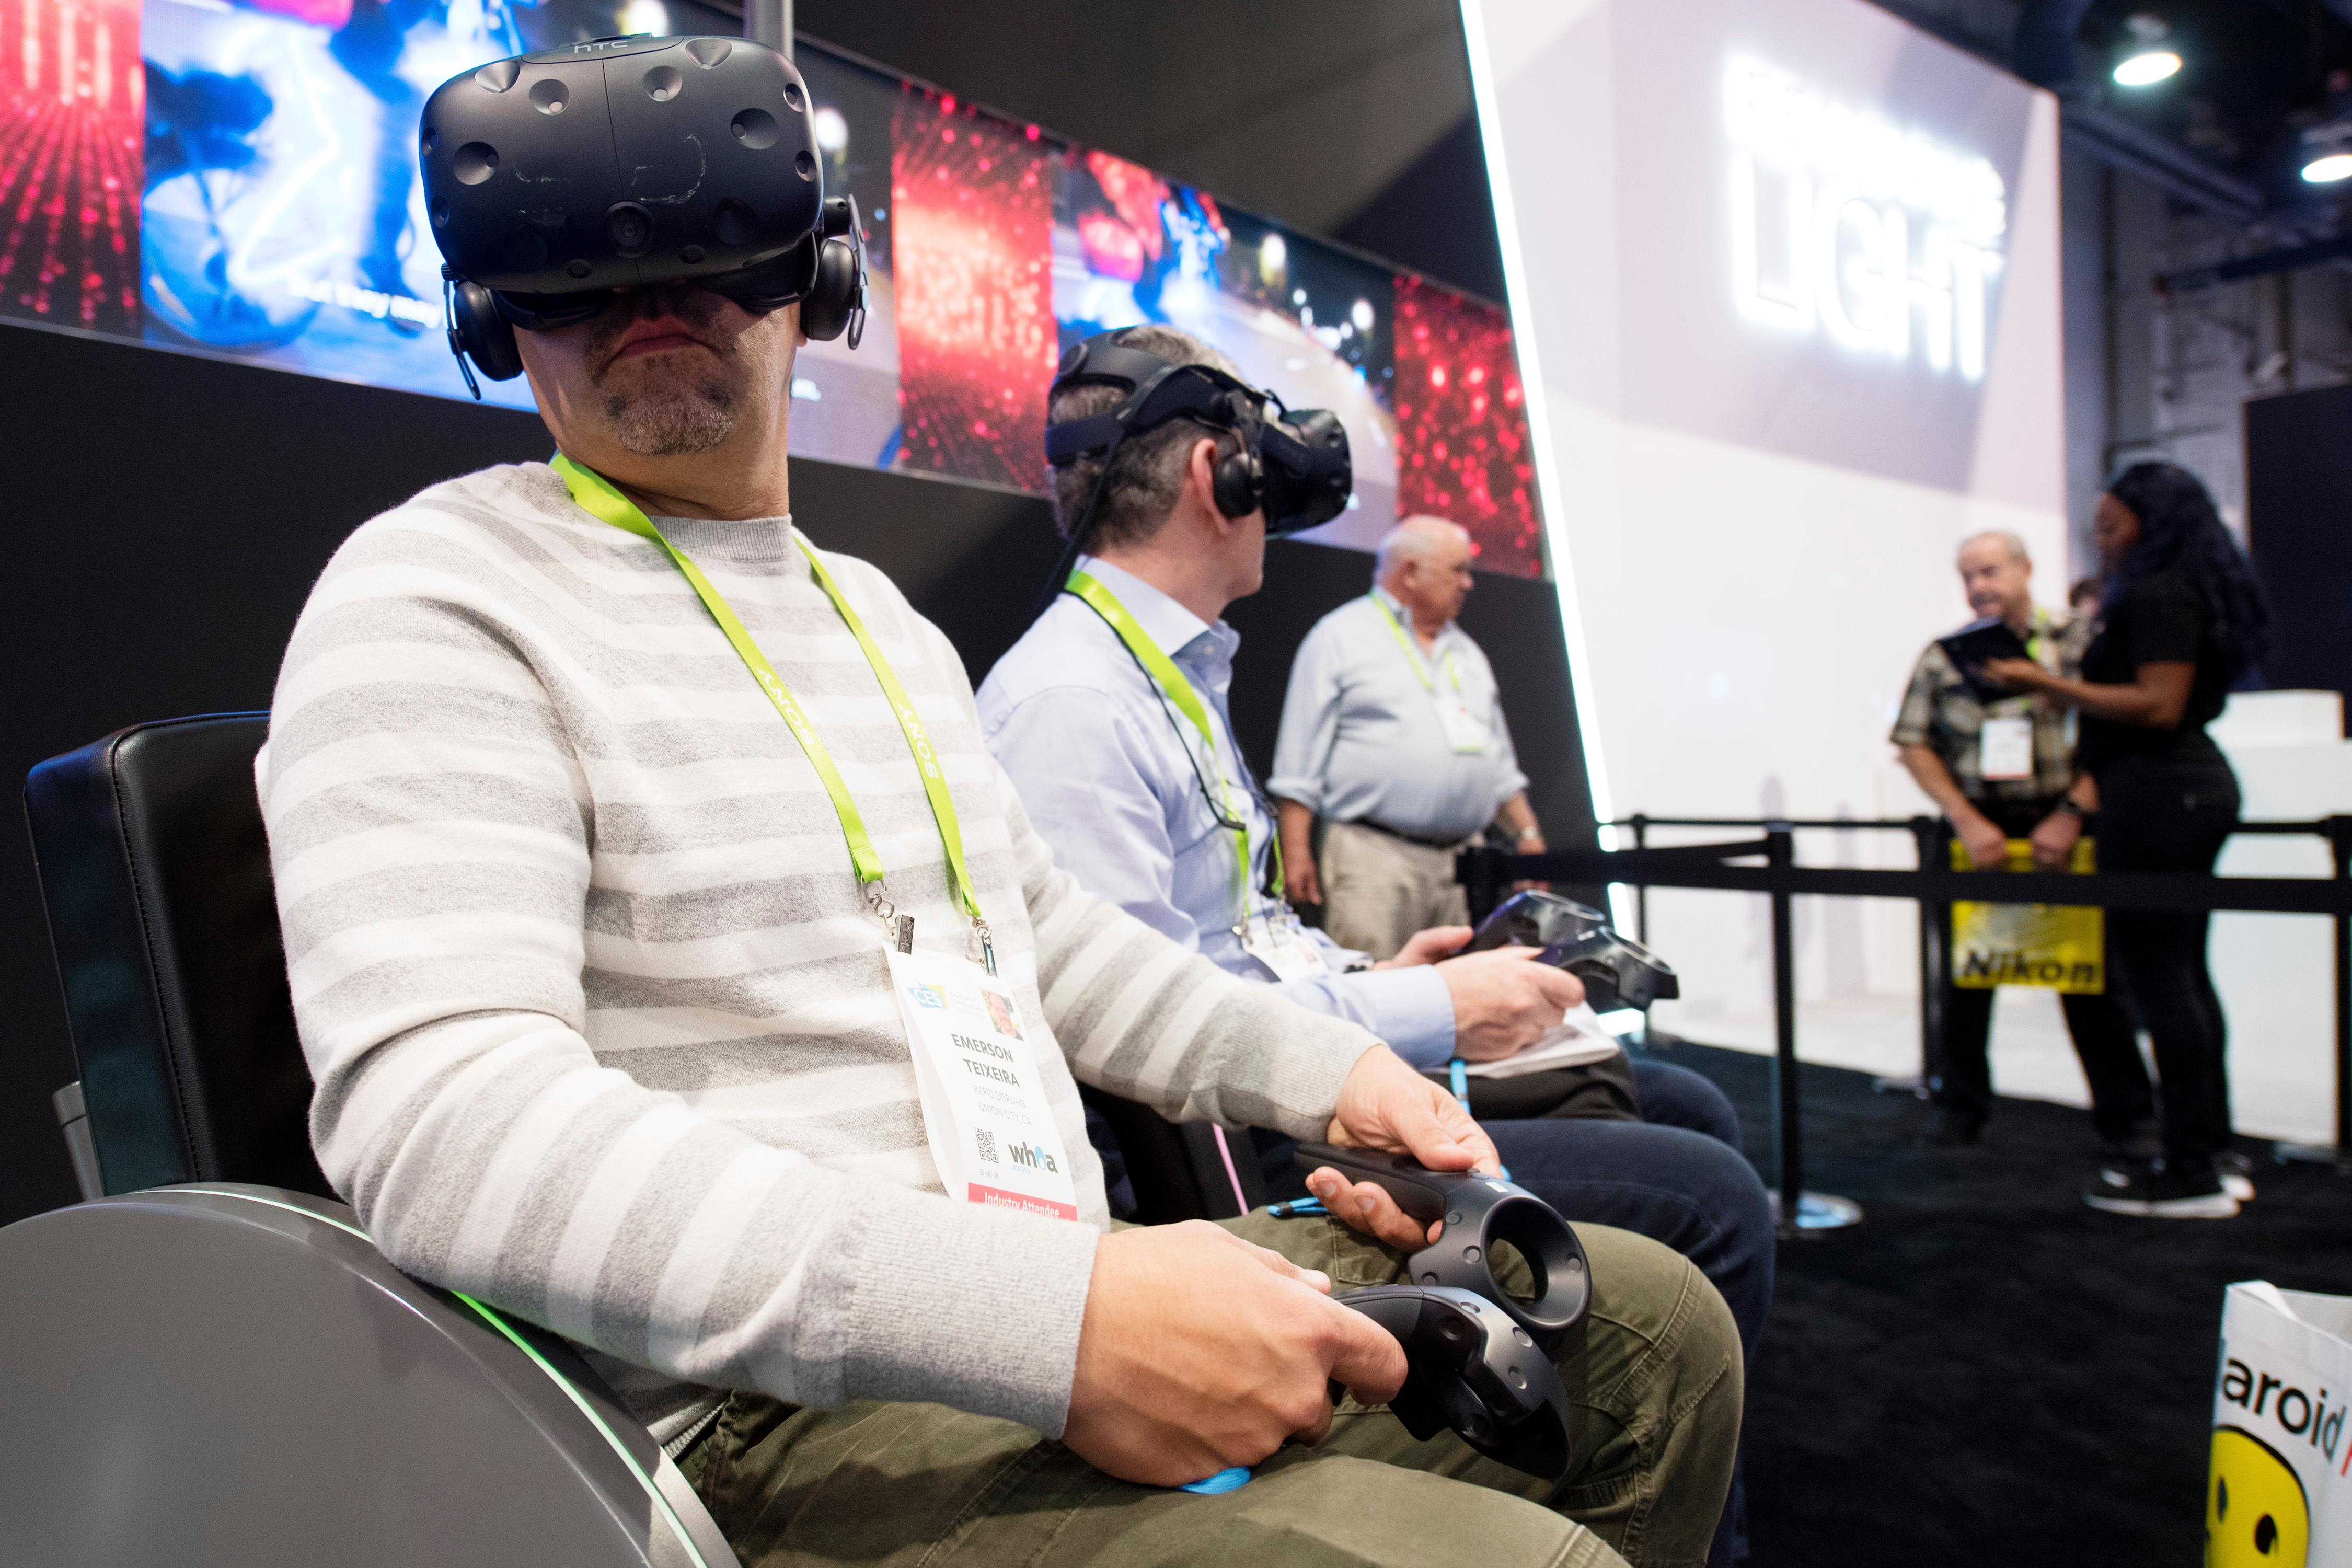 Attendees check out virtual reality offerings during the second day of CES Wednesday, January 10, 2018, at the Las Vegas Convention Center. CREDIT: Sam Morris/Las Vegas News Bureau